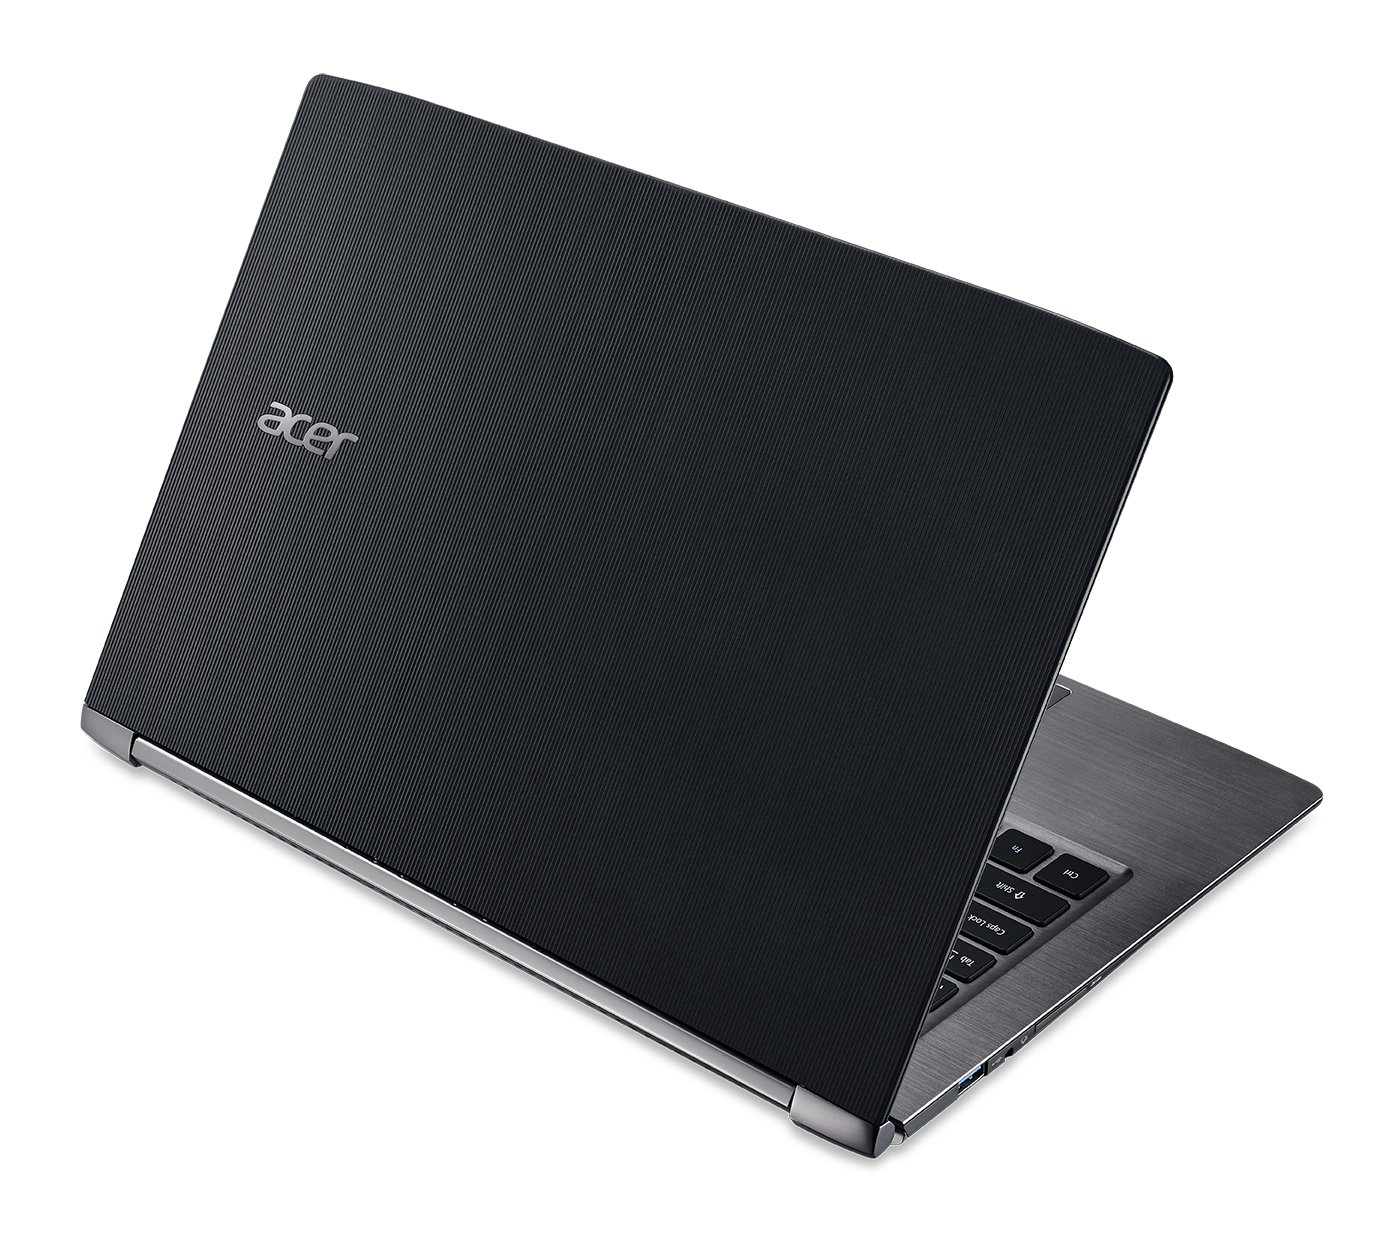 Acer Aspire S5-371T-78TA Review